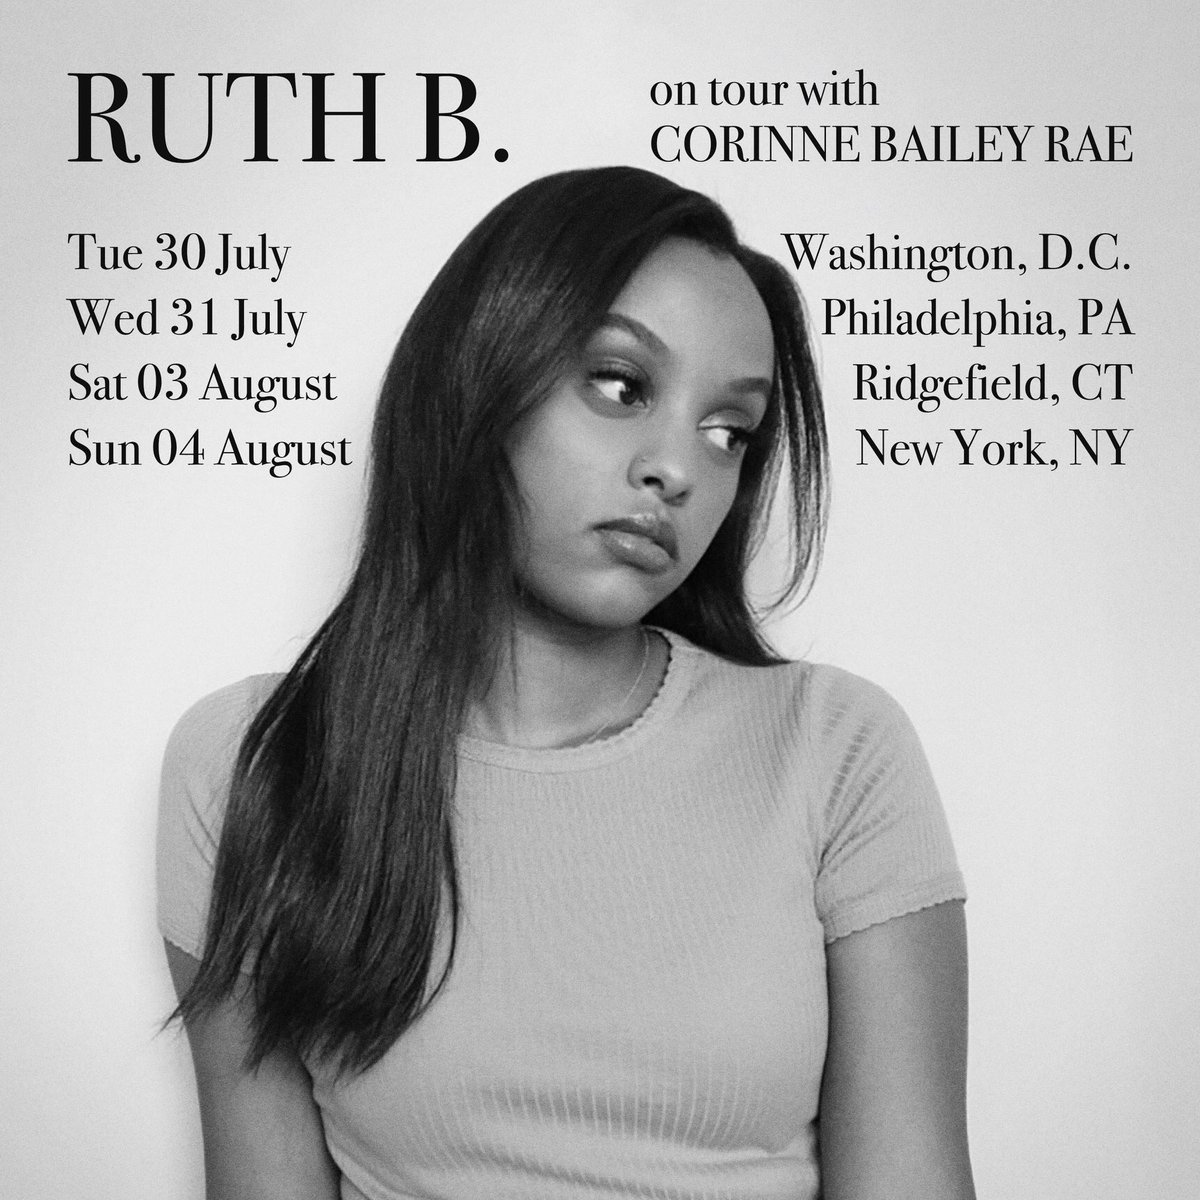 couple shows this summer opening up for the amazing @CorinneBRae promise im more excited than I look in this pic hehe. hope to see u ruthbofficial.com/tour